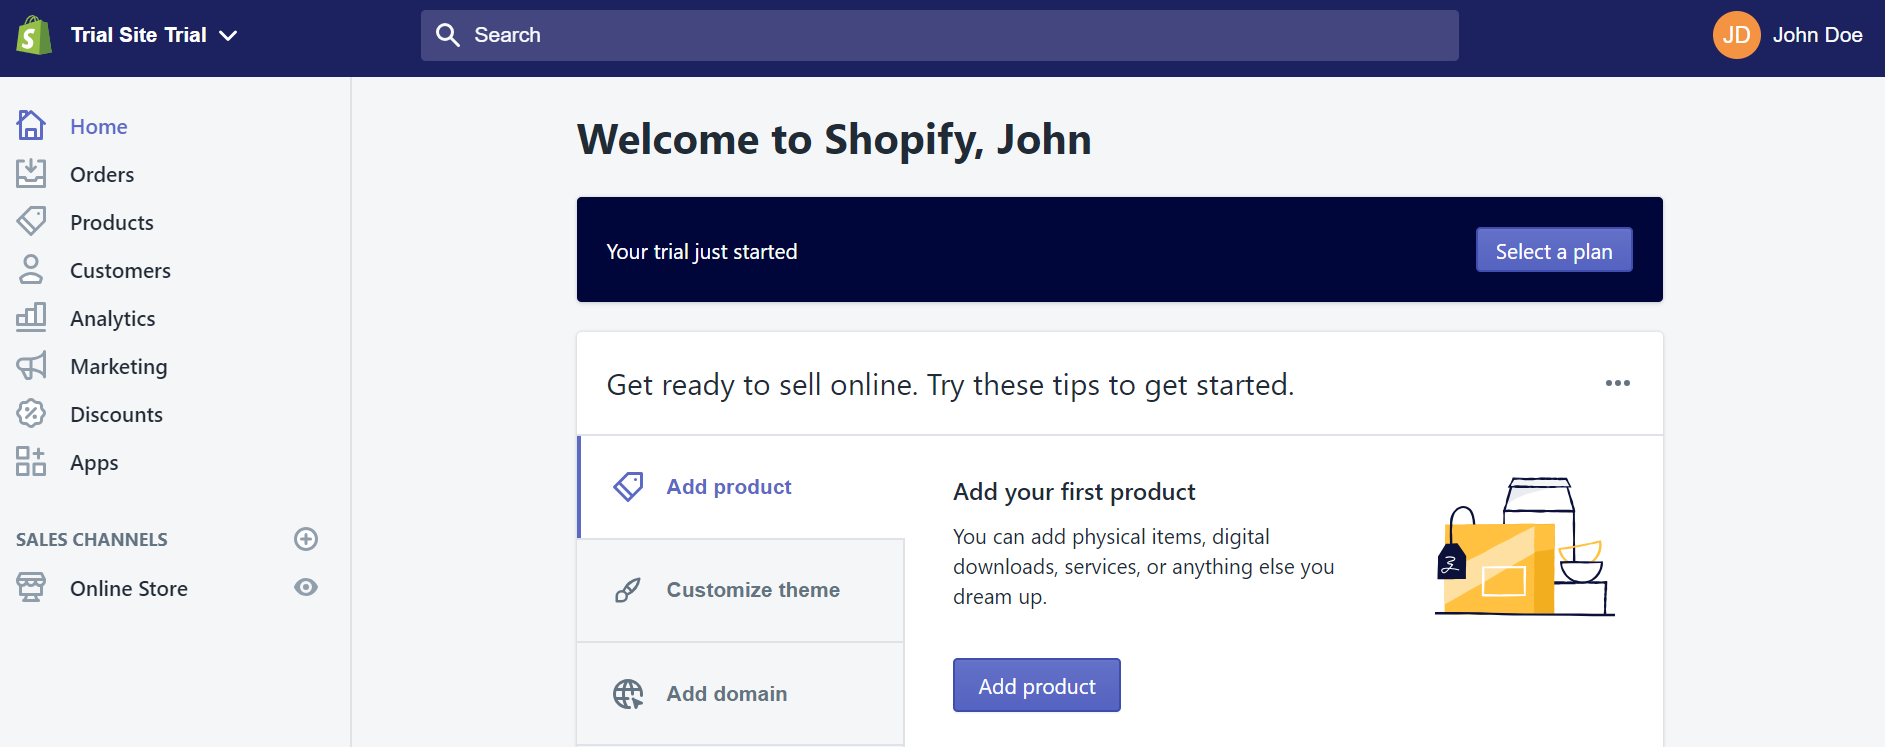 Welcome to Shopify